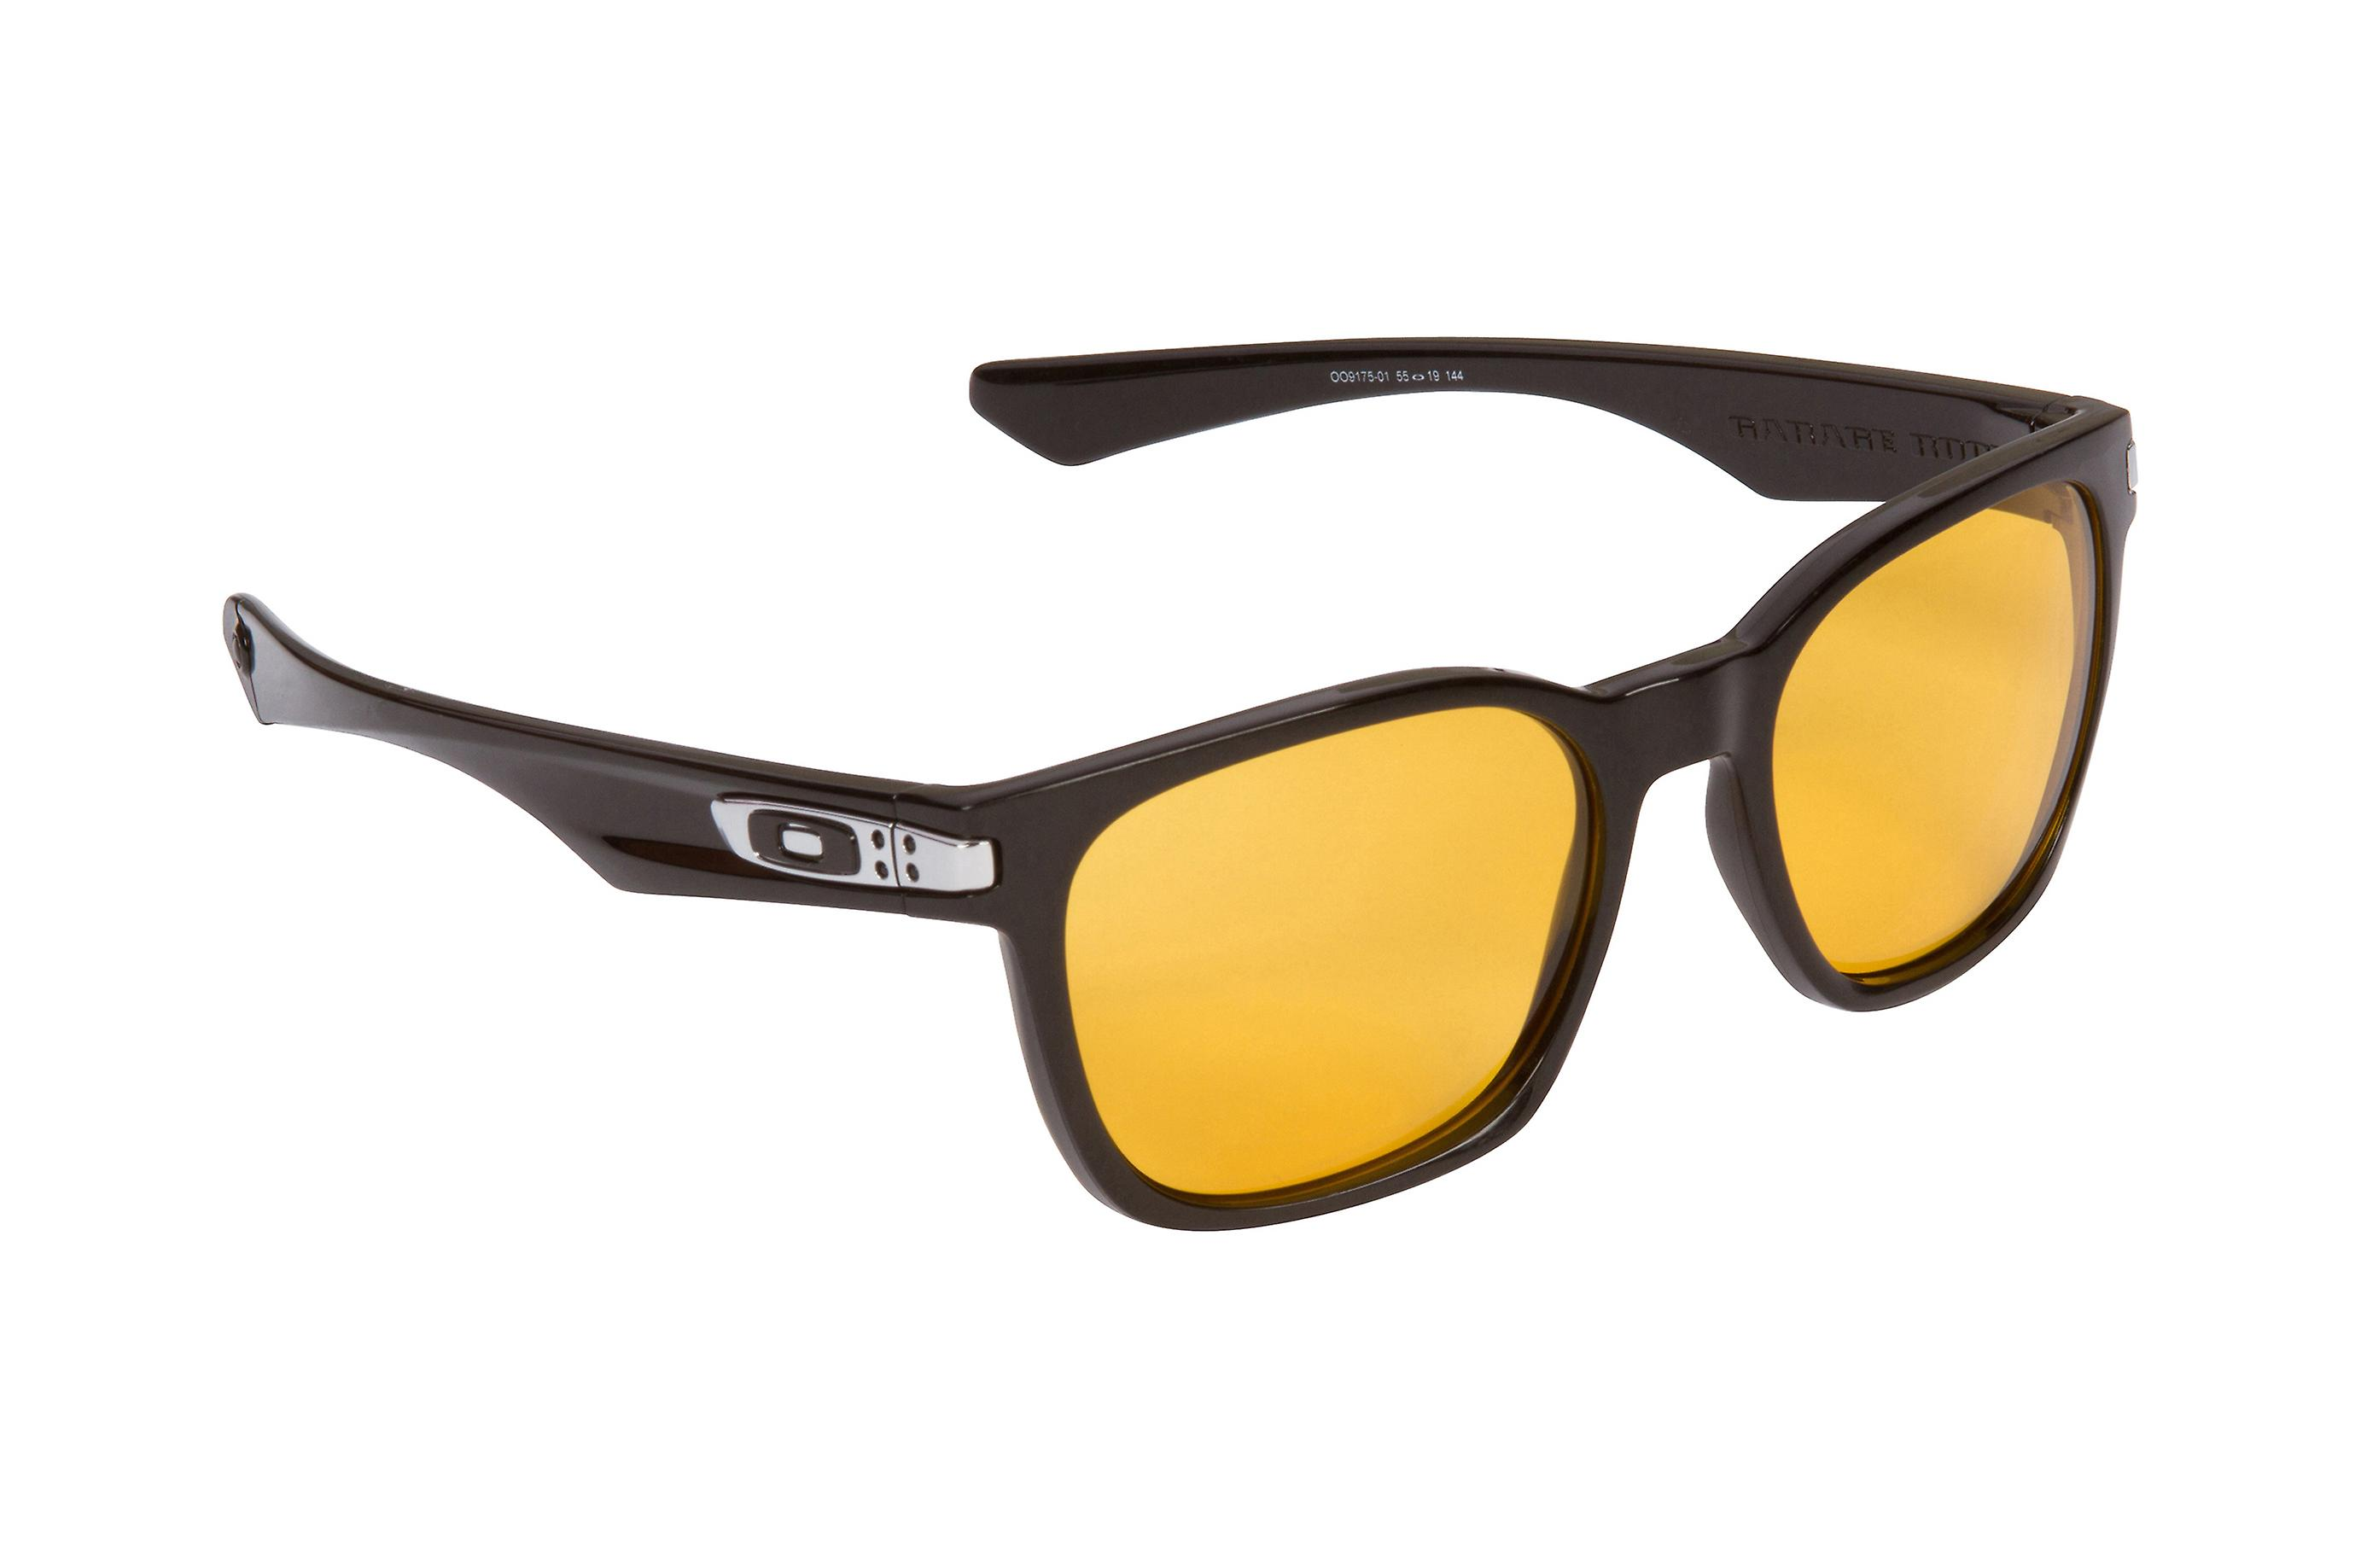 5f87d7bcc6 ... low cost best seek replacement lenses for oakley garage rock hi yellow  yellow mirror 8bff7 6545f